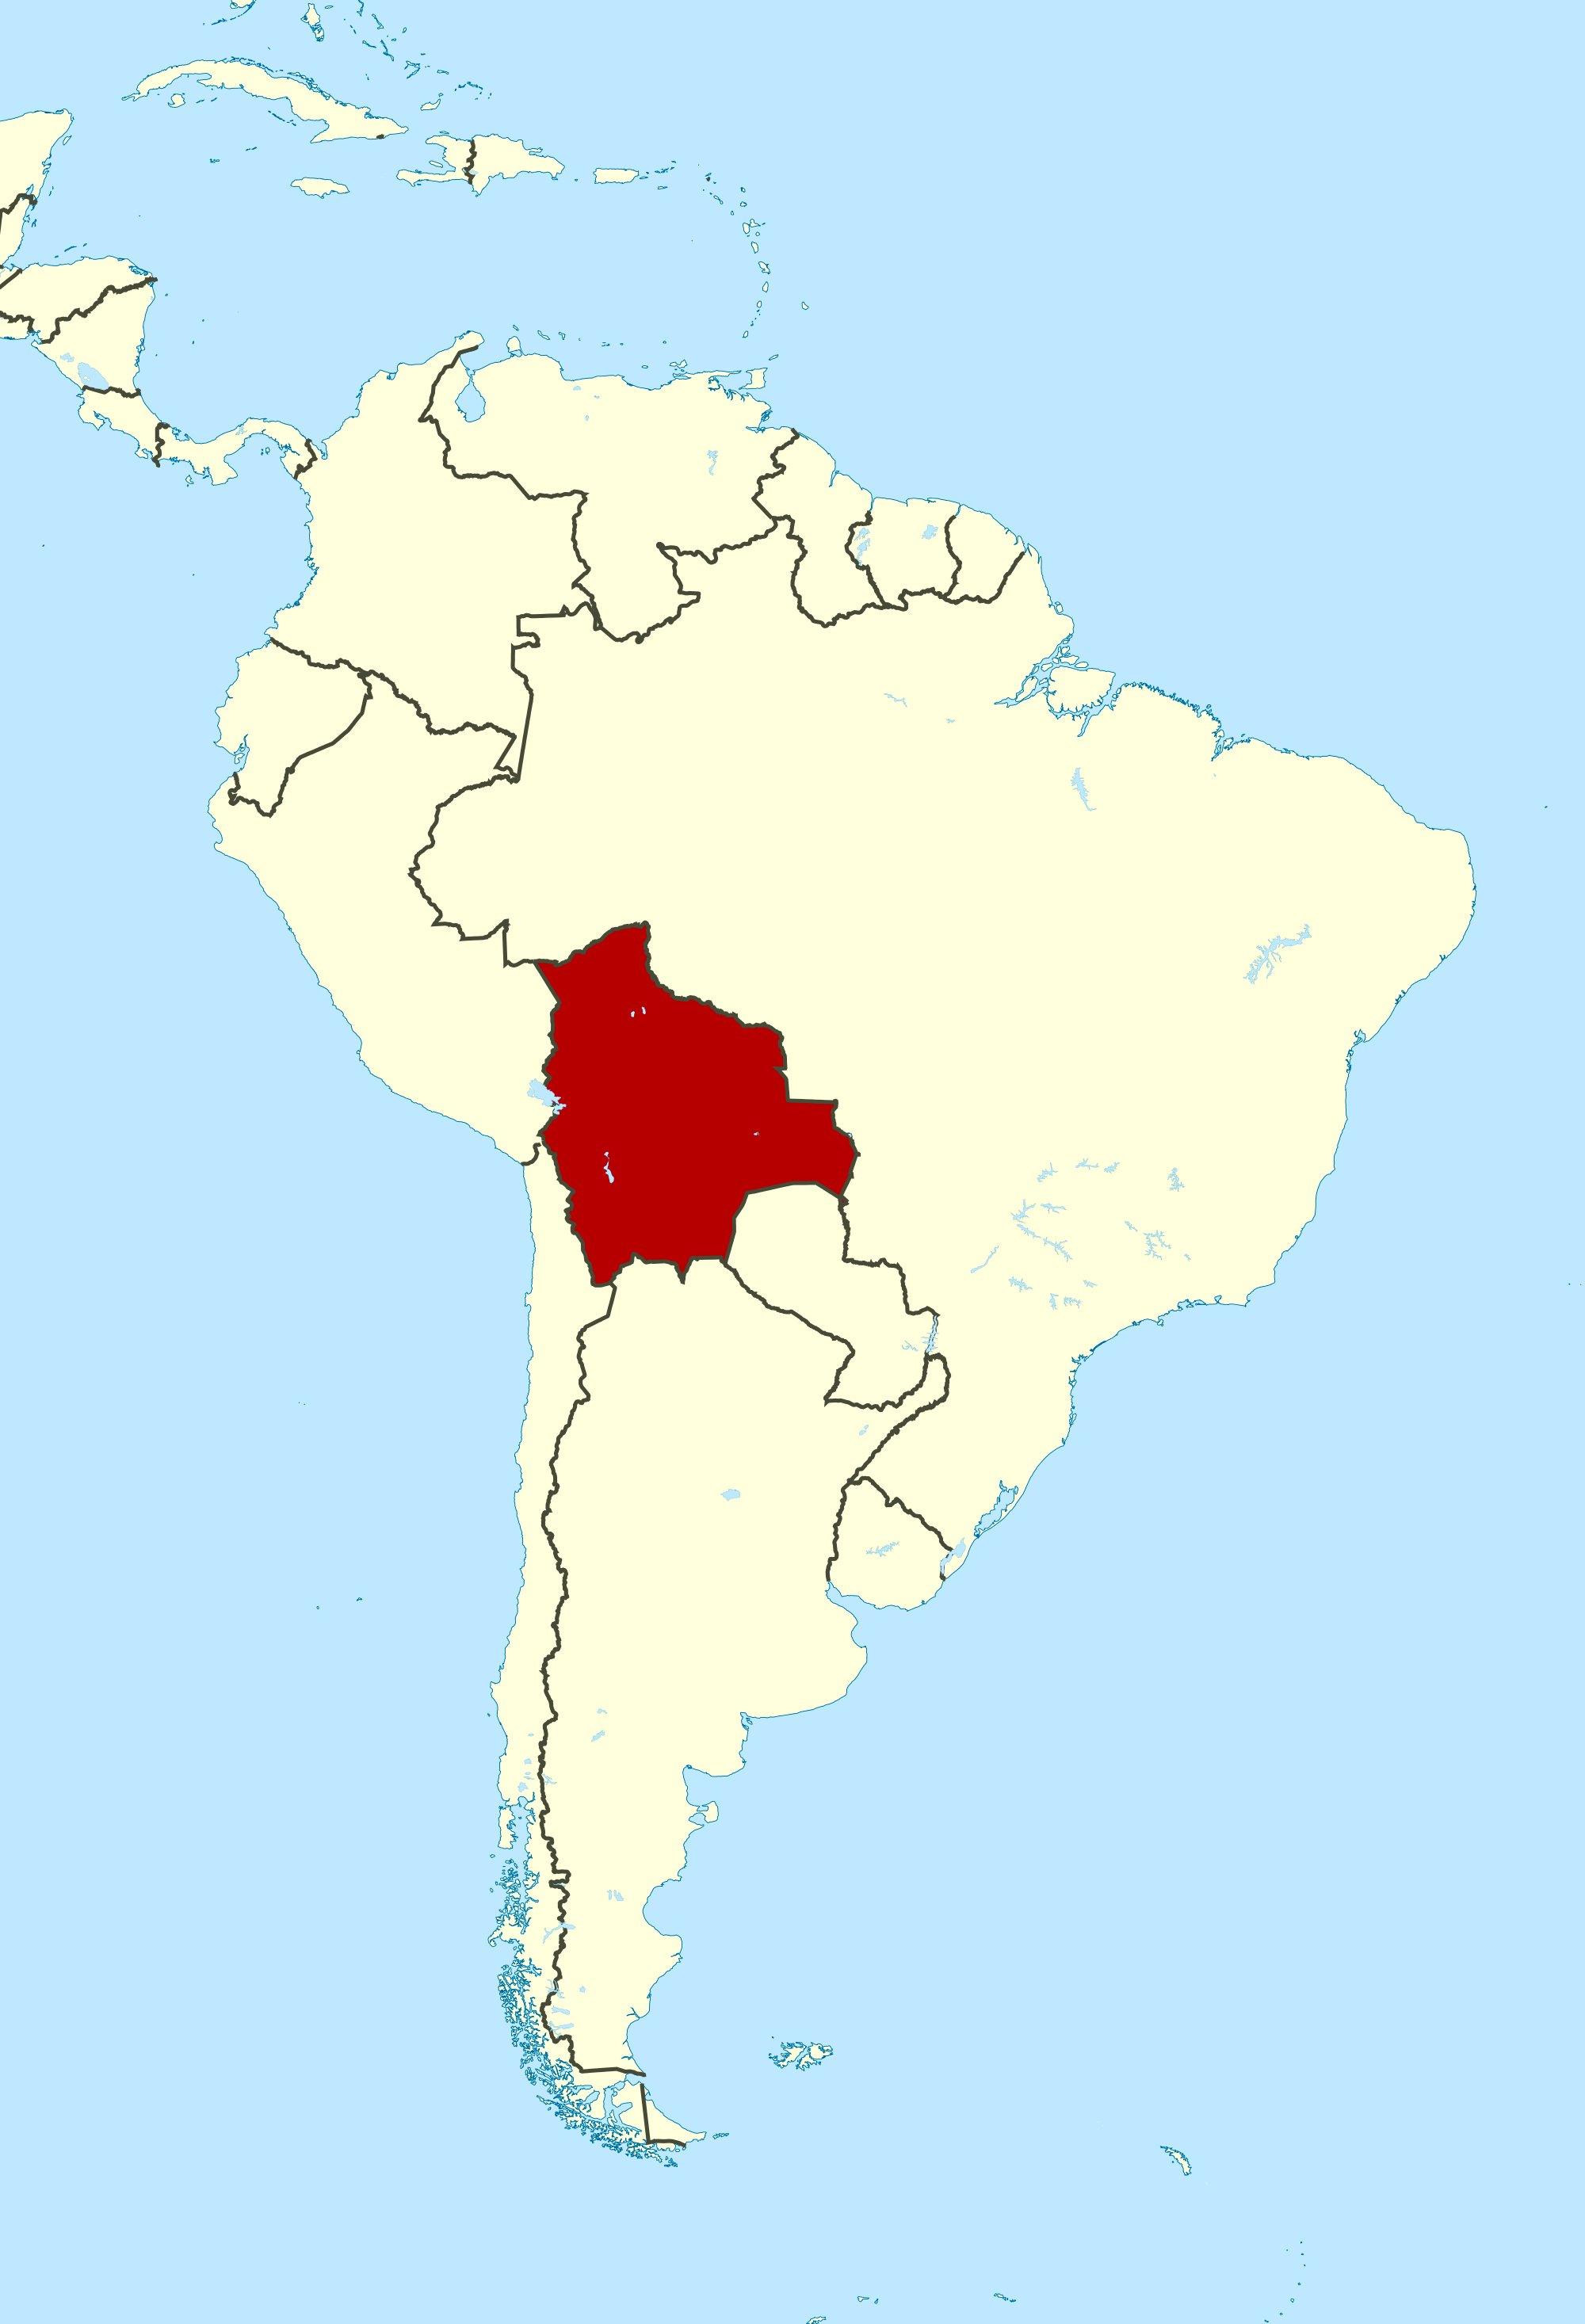 PRINT Bolivia is located in central South America. Map ... on haiti map, mexico map, italy map, australia map, india map, belize map, panama map, croatia map, africa map, uruguay map, morocco map, asia map, ecuador map, western hemisphere map, europe map, middle east map, zimbabwe map, spain map, costa rica map, argentina map,